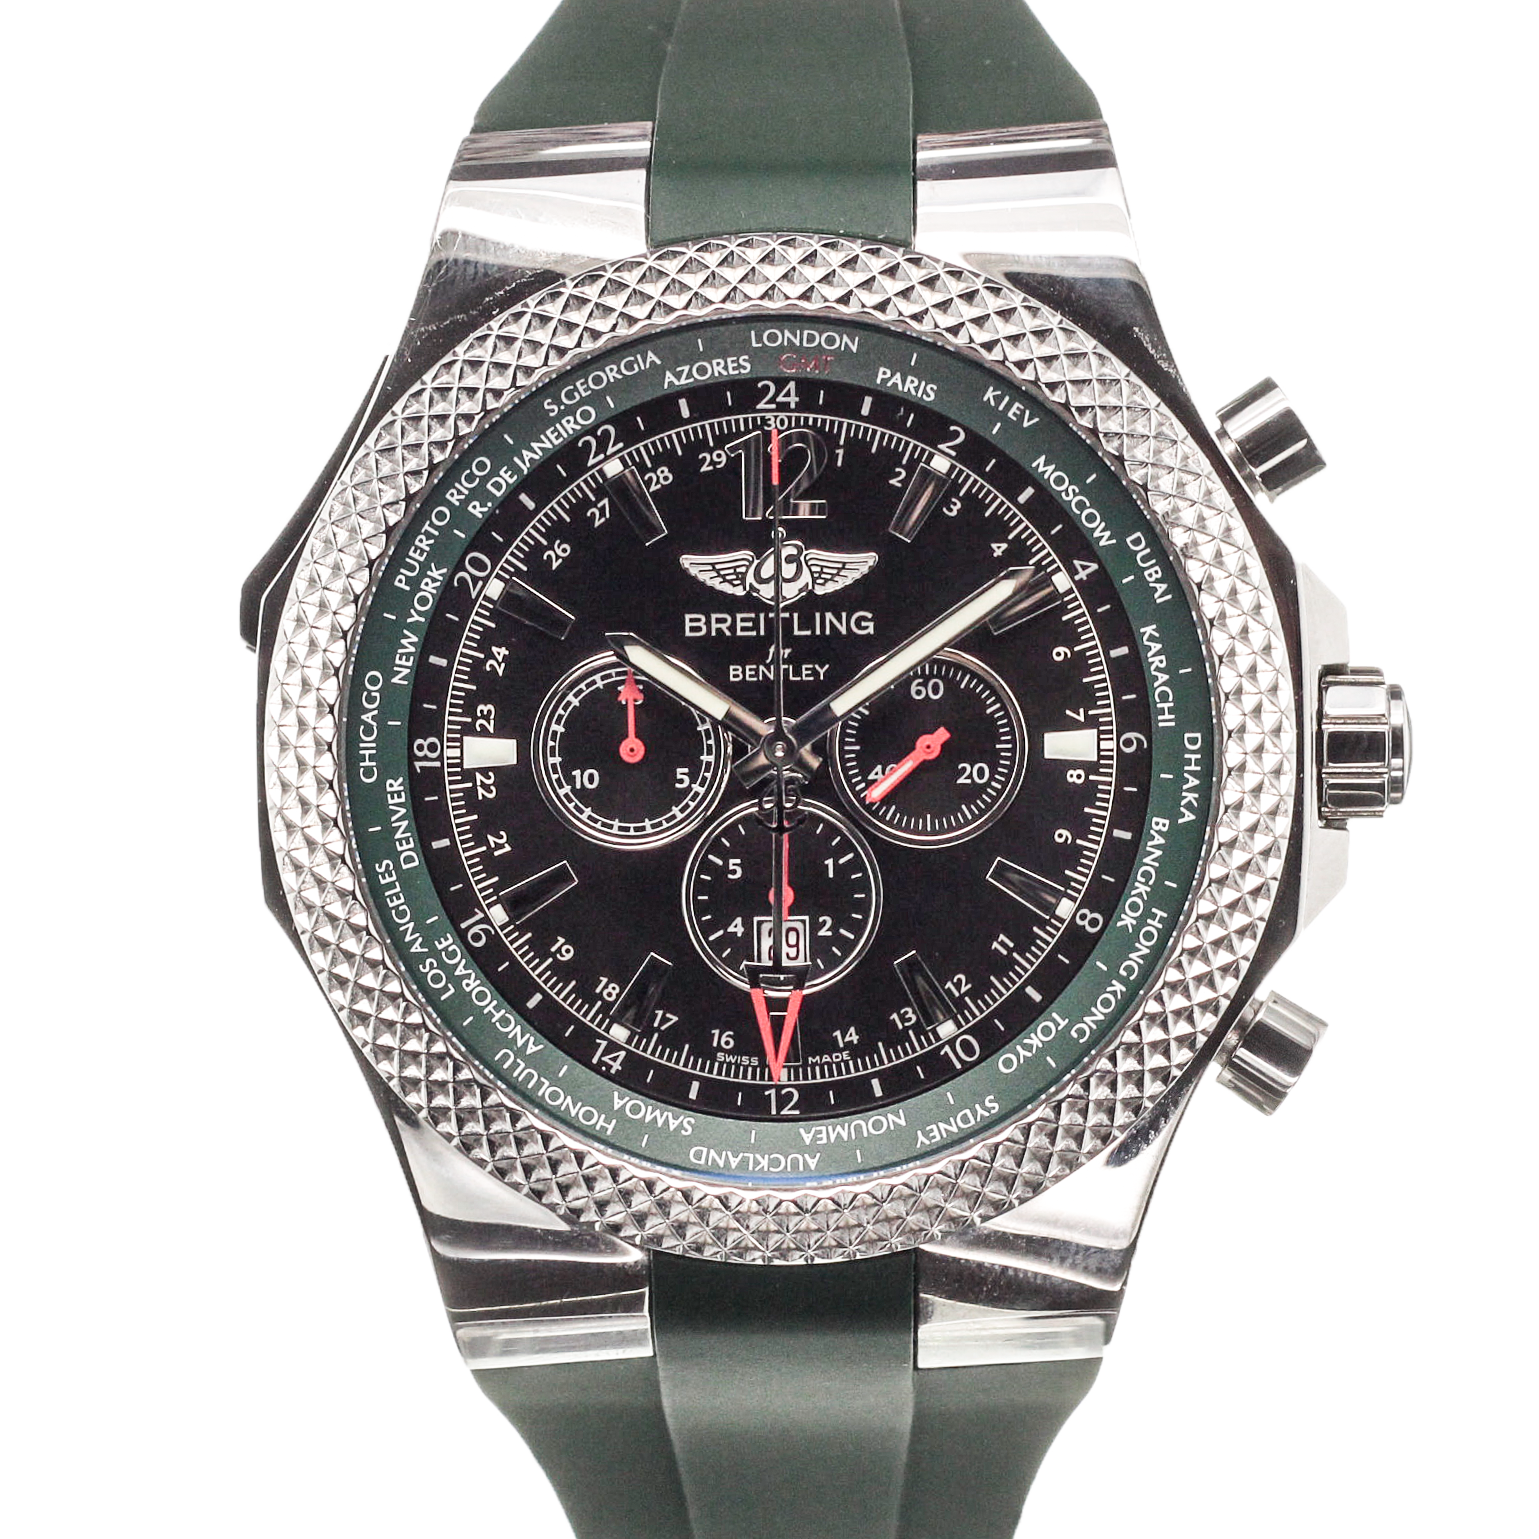 Breitling Bentley Gt Wristwatches: Breitling For Bentley - Infos, Price & History